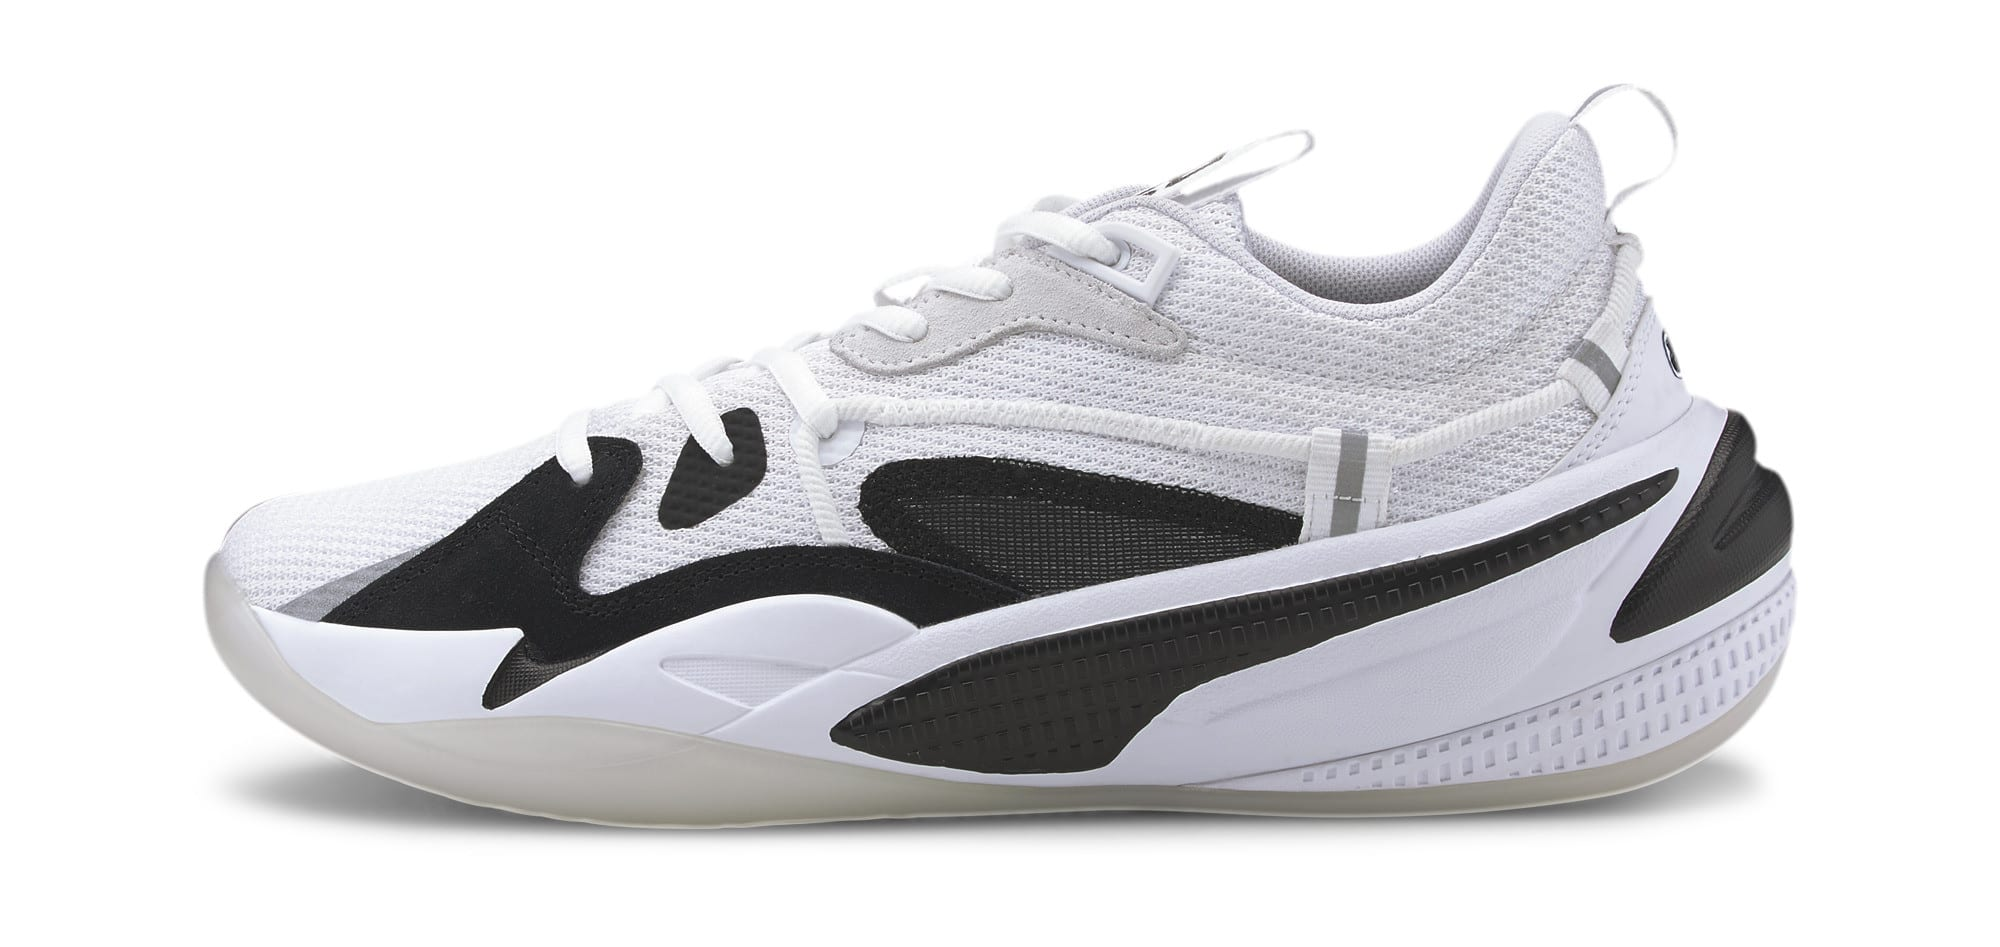 Puma RS-Dreamer 'Ebony and Ivory' 193990_01 Lateral